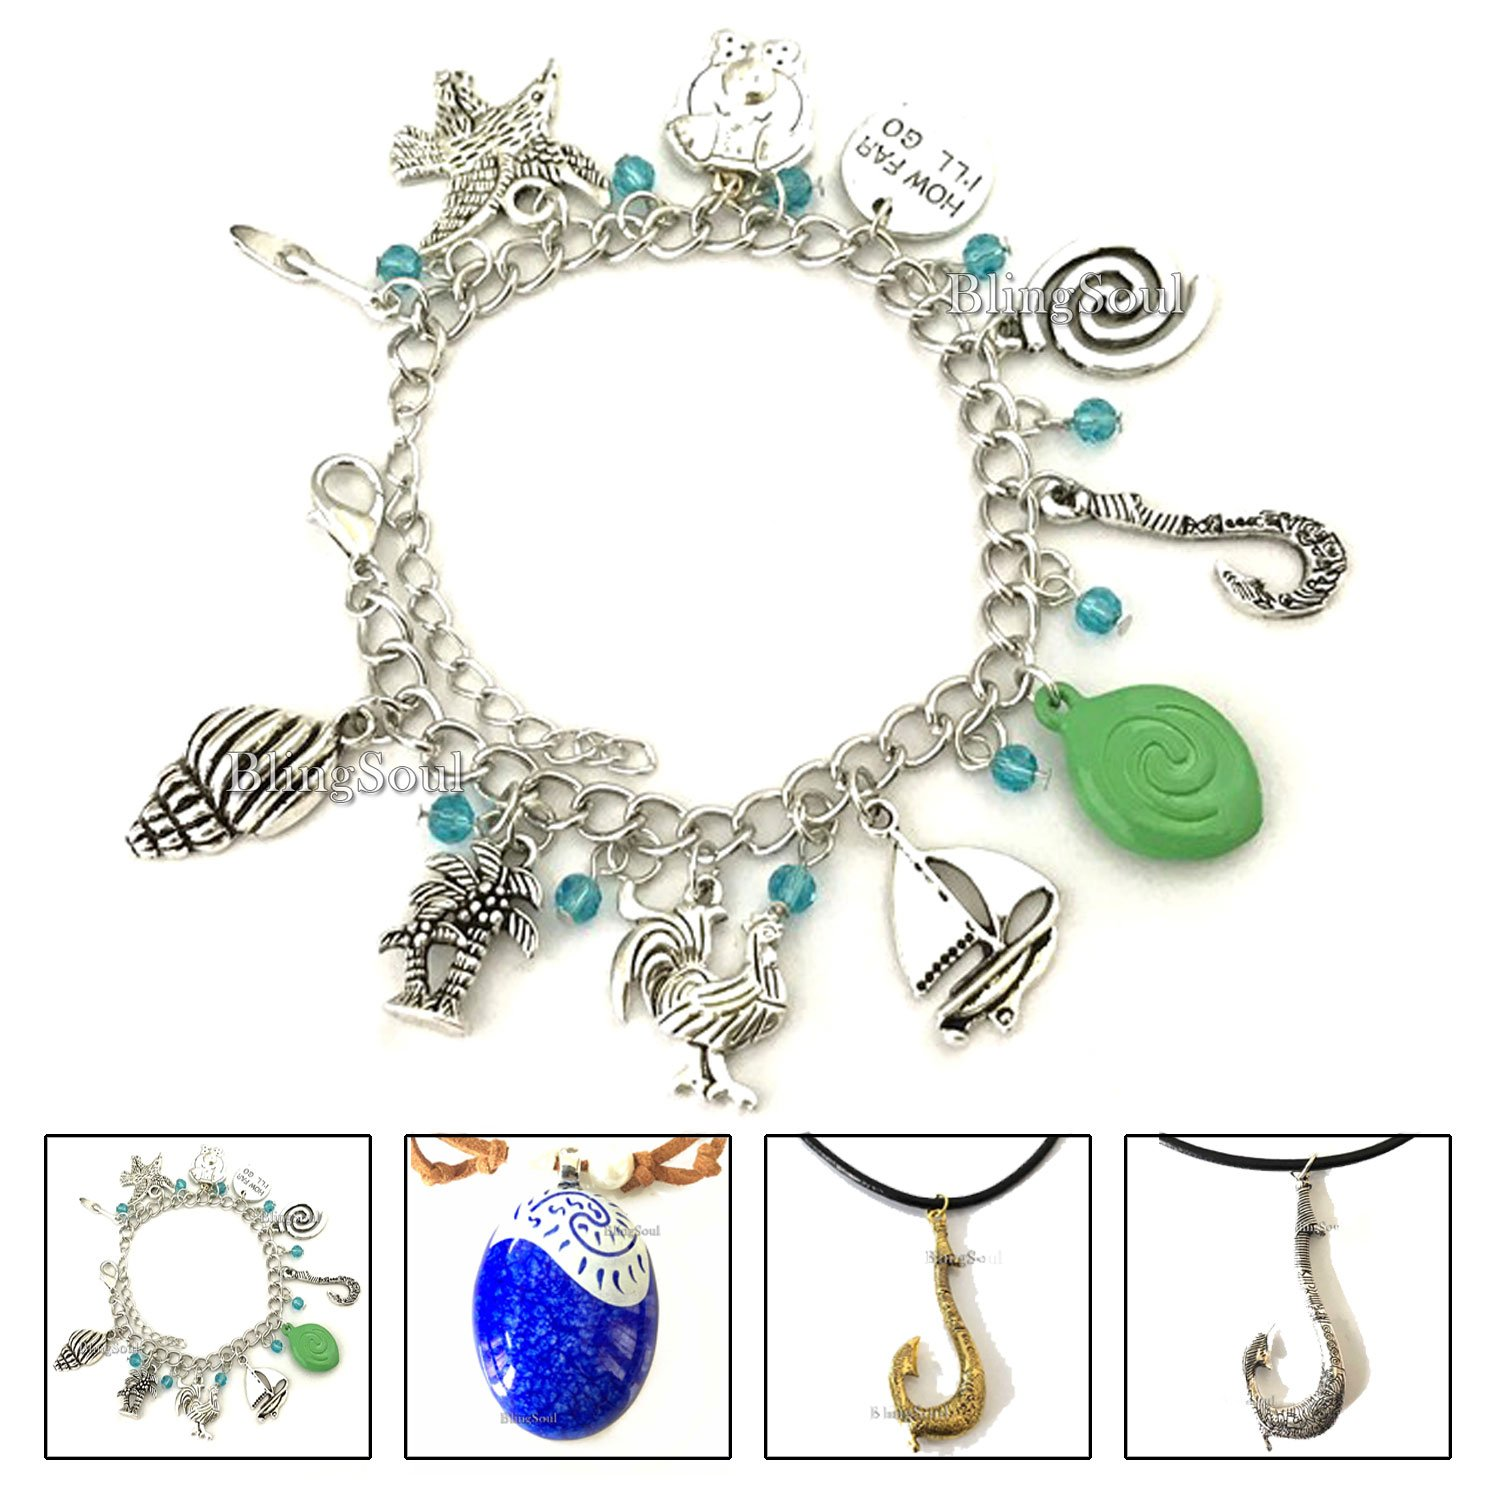 BlingSoul Maui Moana Charm Bracelet - Maui Hook Jewelry Moana Gift Merchandise for Women